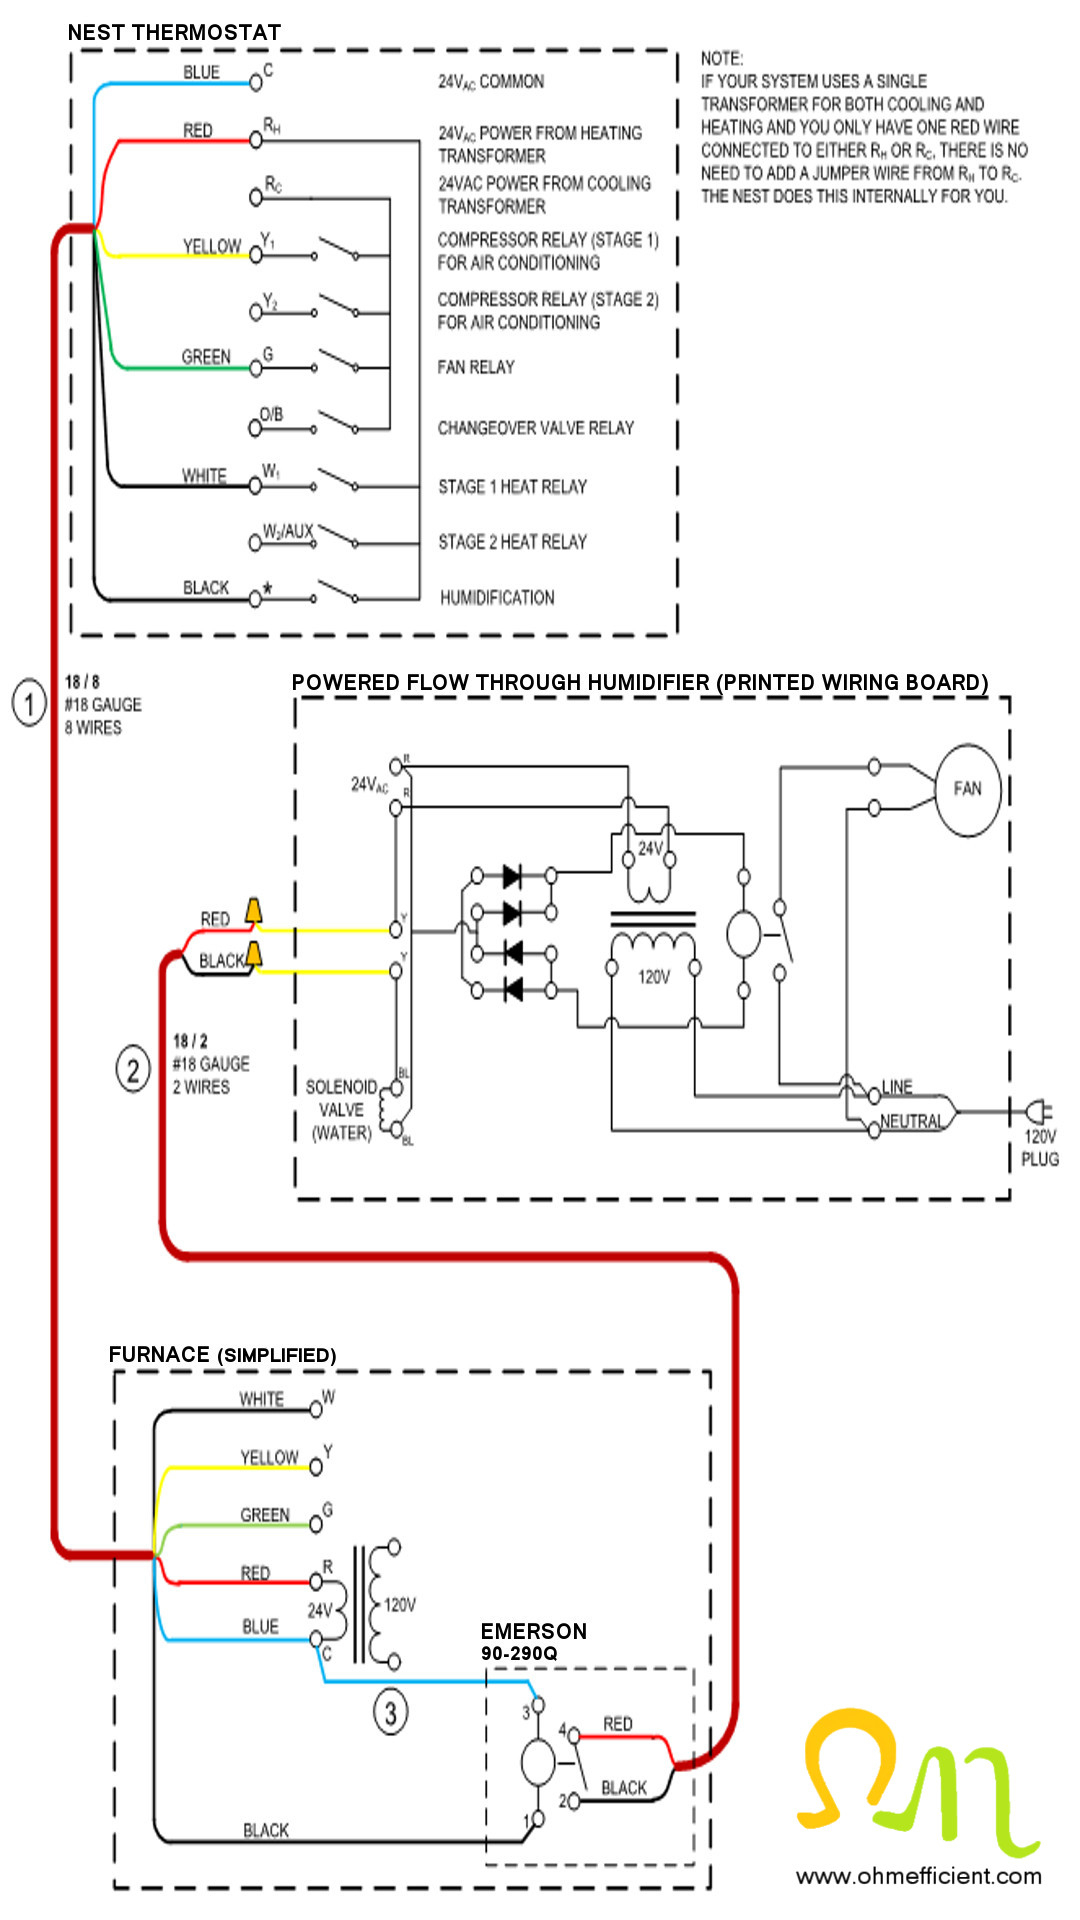 Wiring Diagram For Nest Thermostat With Humidifier  U2013 Nest